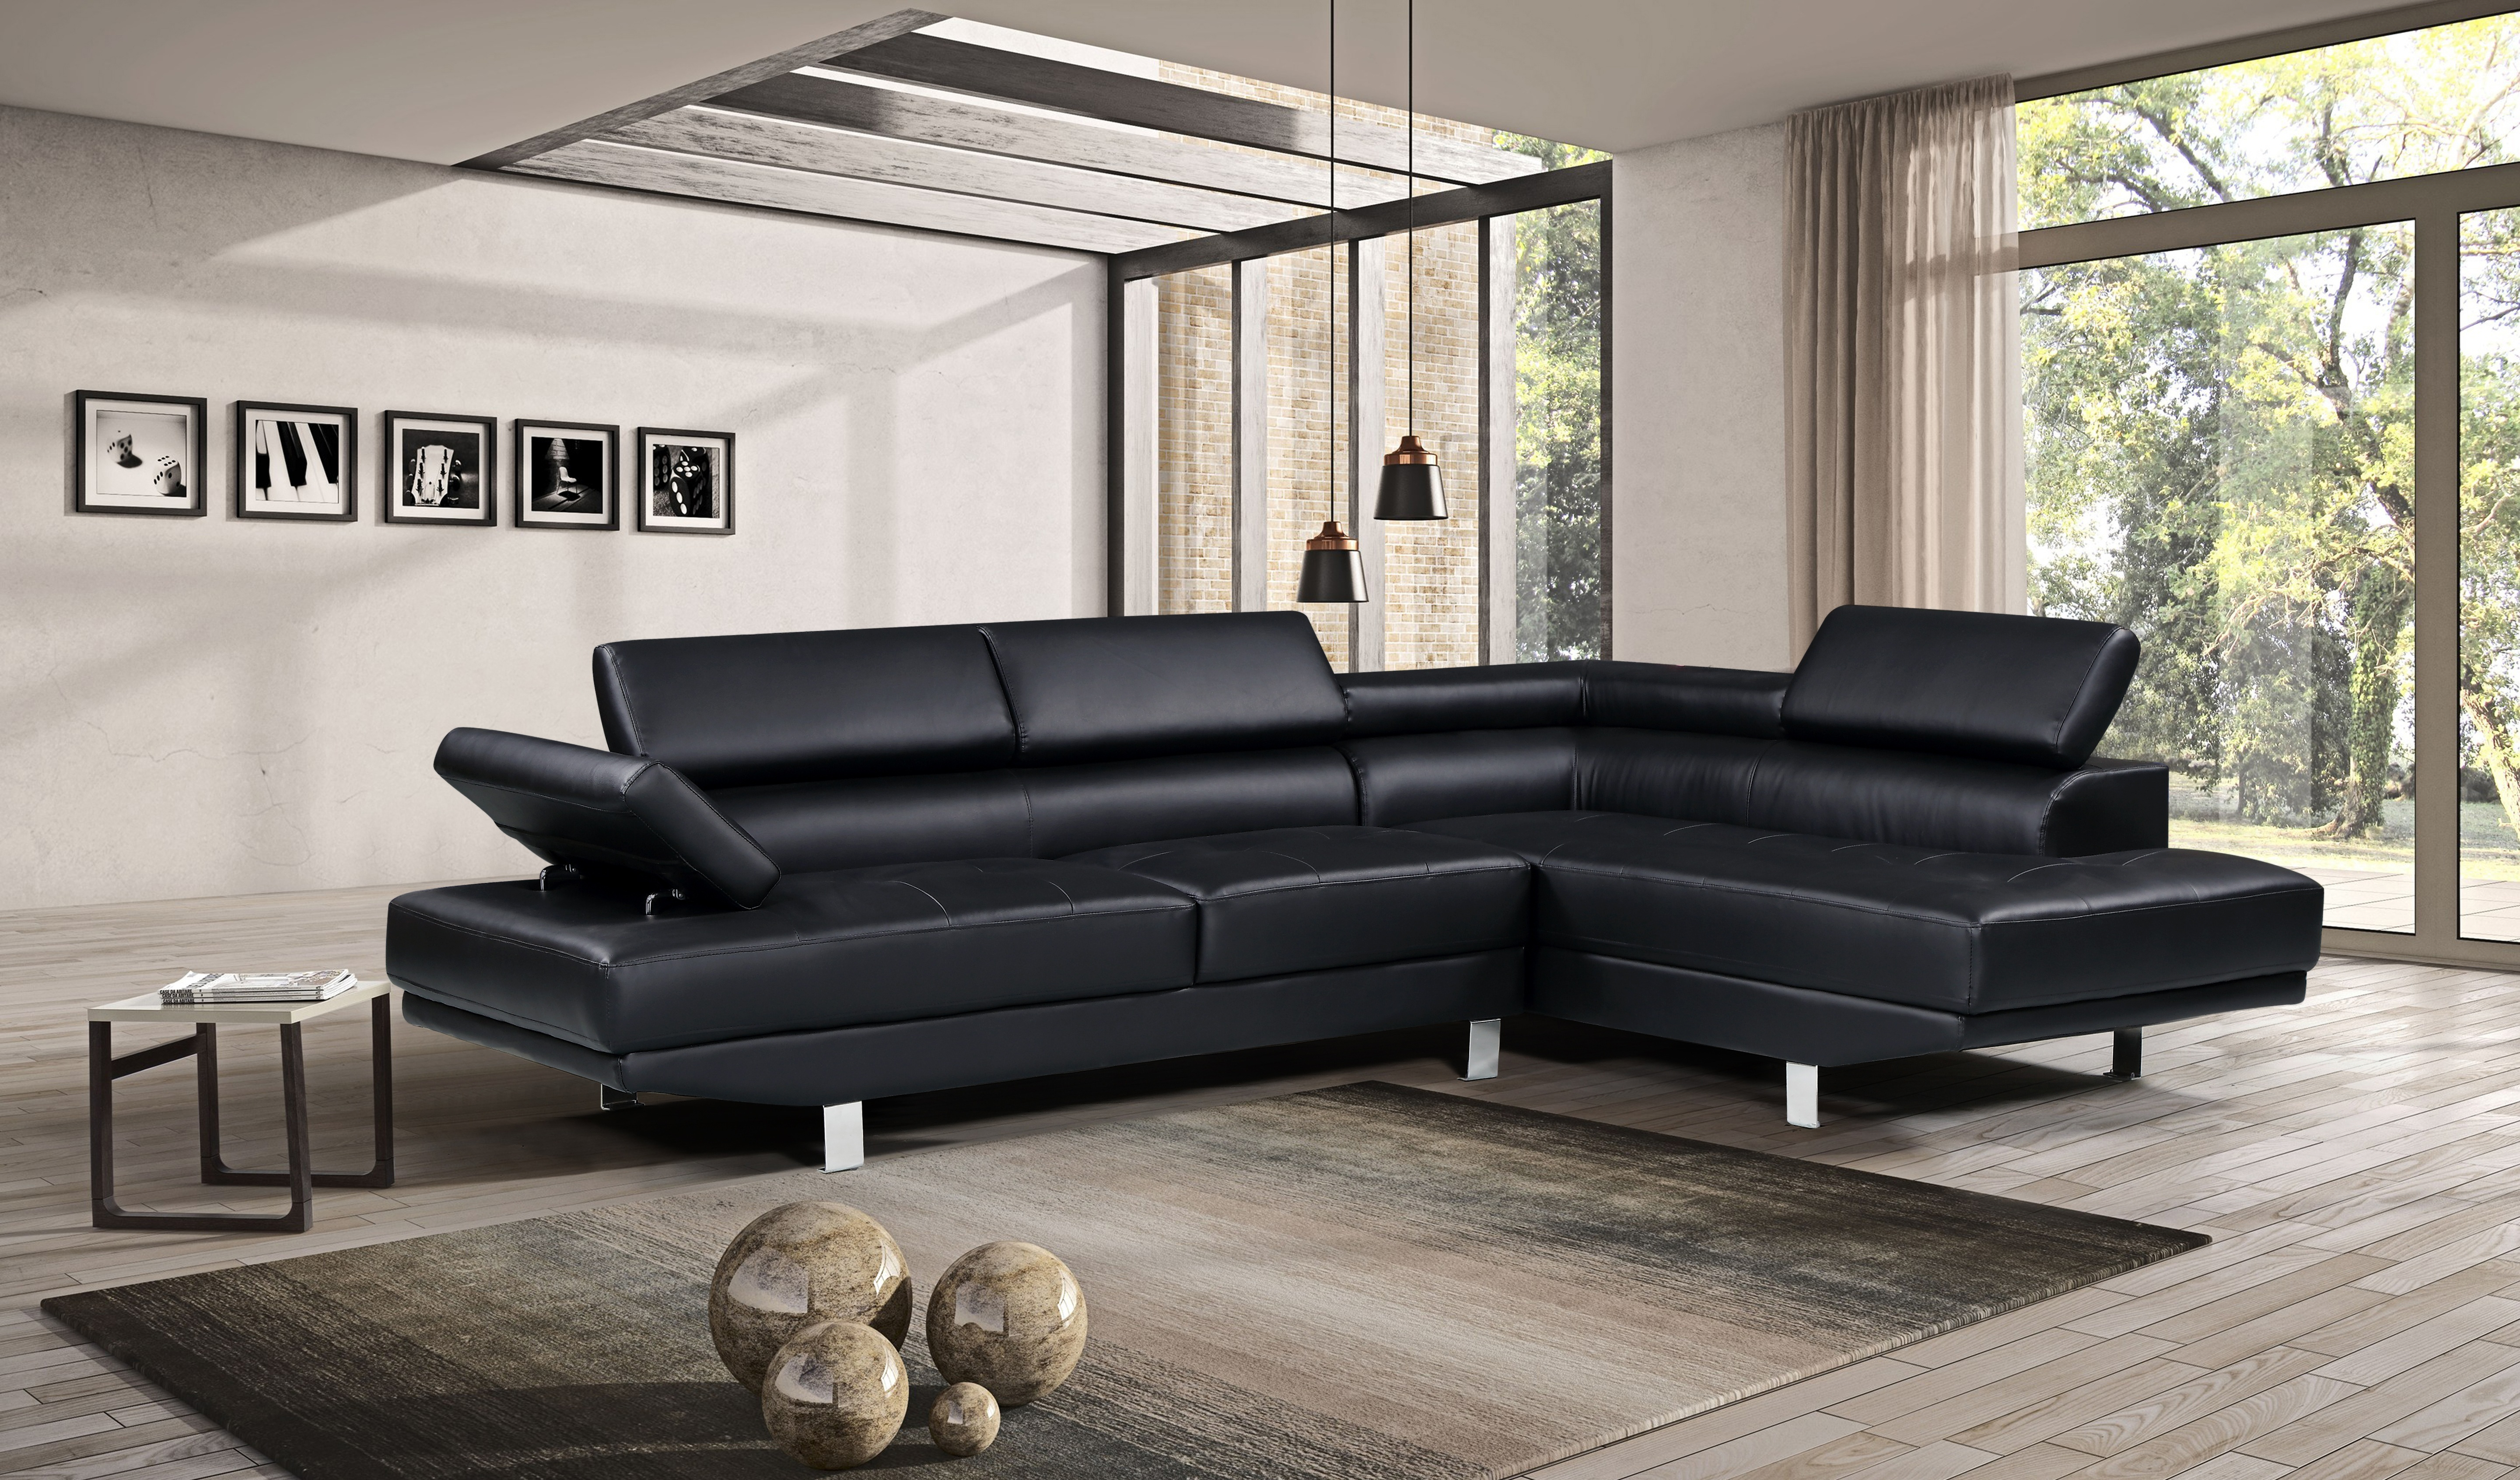 Brilliant Harperbright Designs Modern Faux Leather Sectional Sofa Dailytribune Chair Design For Home Dailytribuneorg